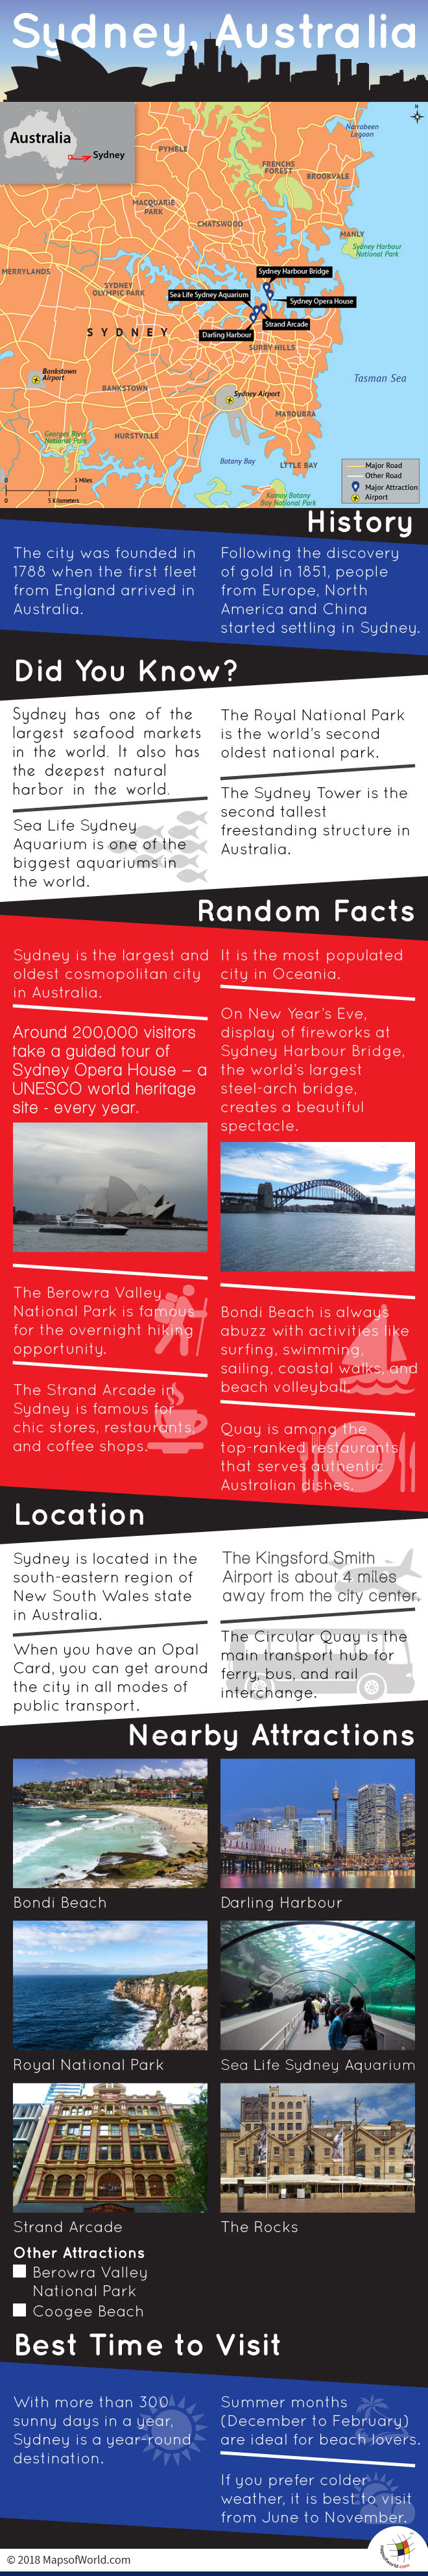 Infographic Depicting Sydney Tourist Attractions